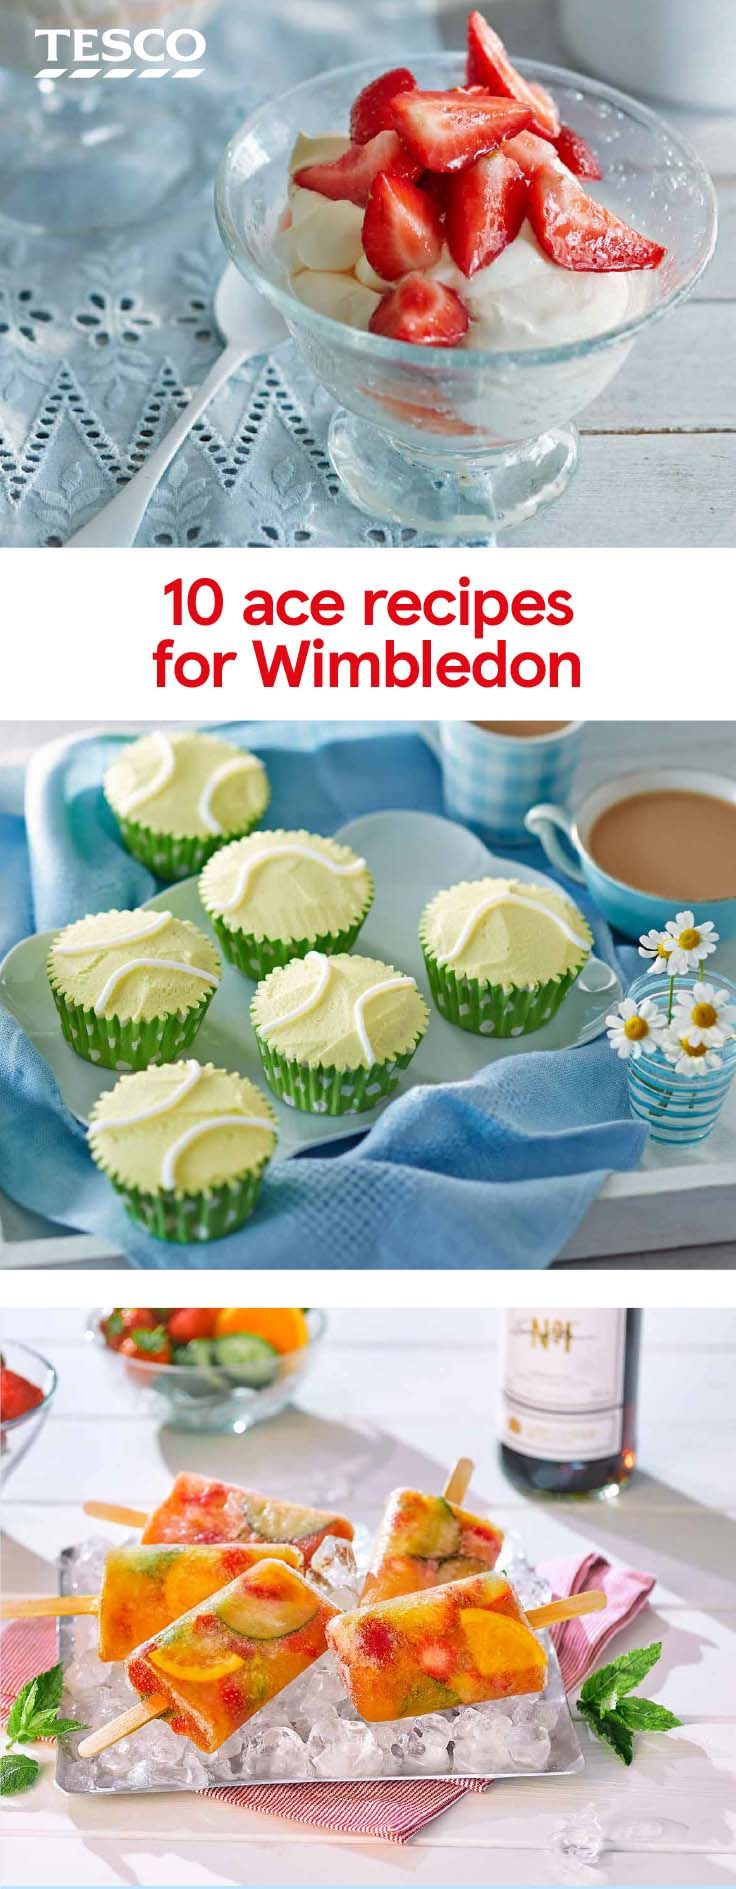 Celebrate the tennis in style - from a boozy Pimms ice lolly to a tennis ball cupcake recipe, we've got all the inspiration you need. | Tesco